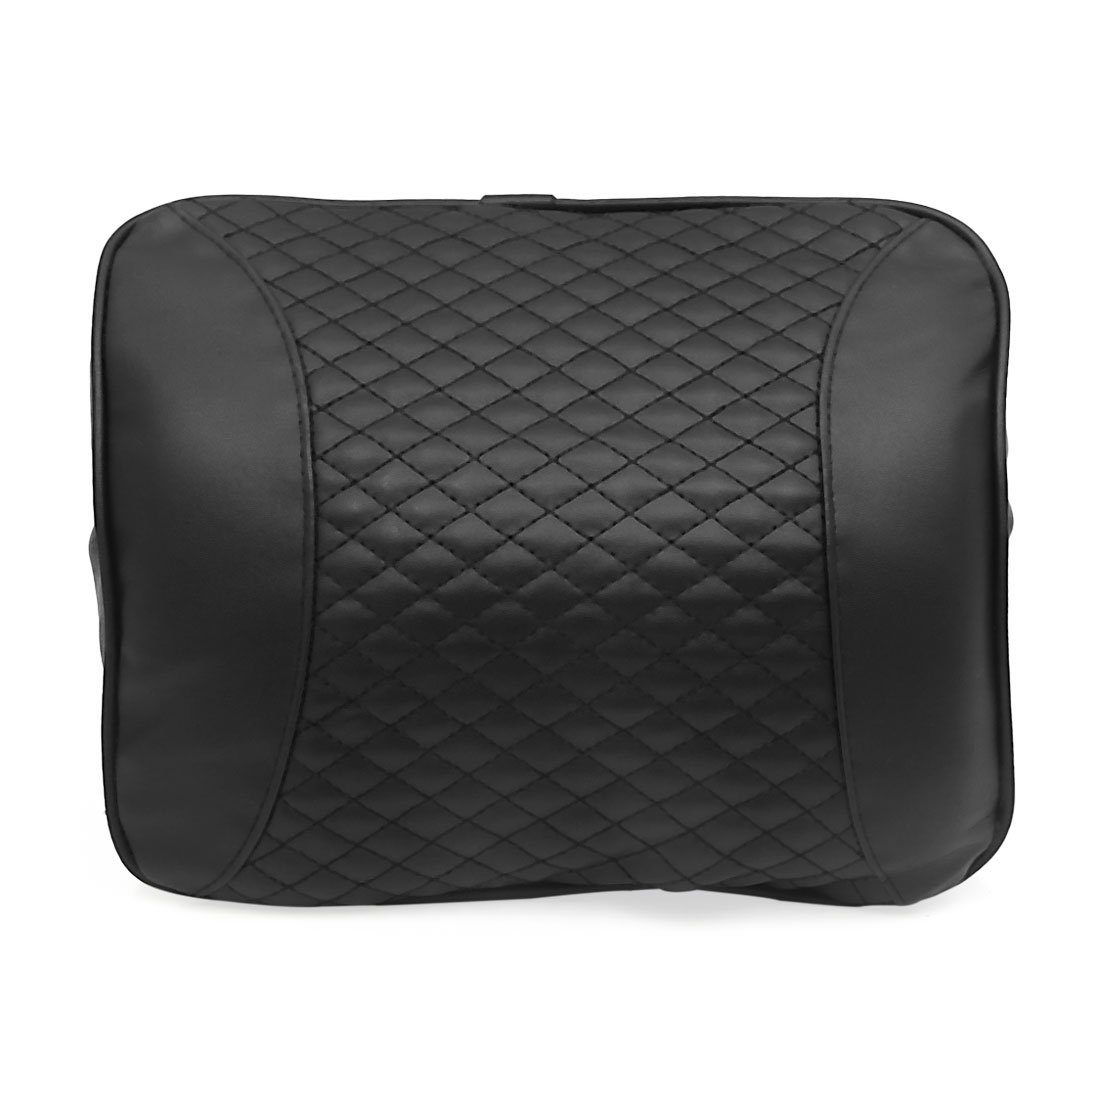 uxcell Black Universal Faux Leather Memory Cotton Car Neck Rest Support Shaped Pillow